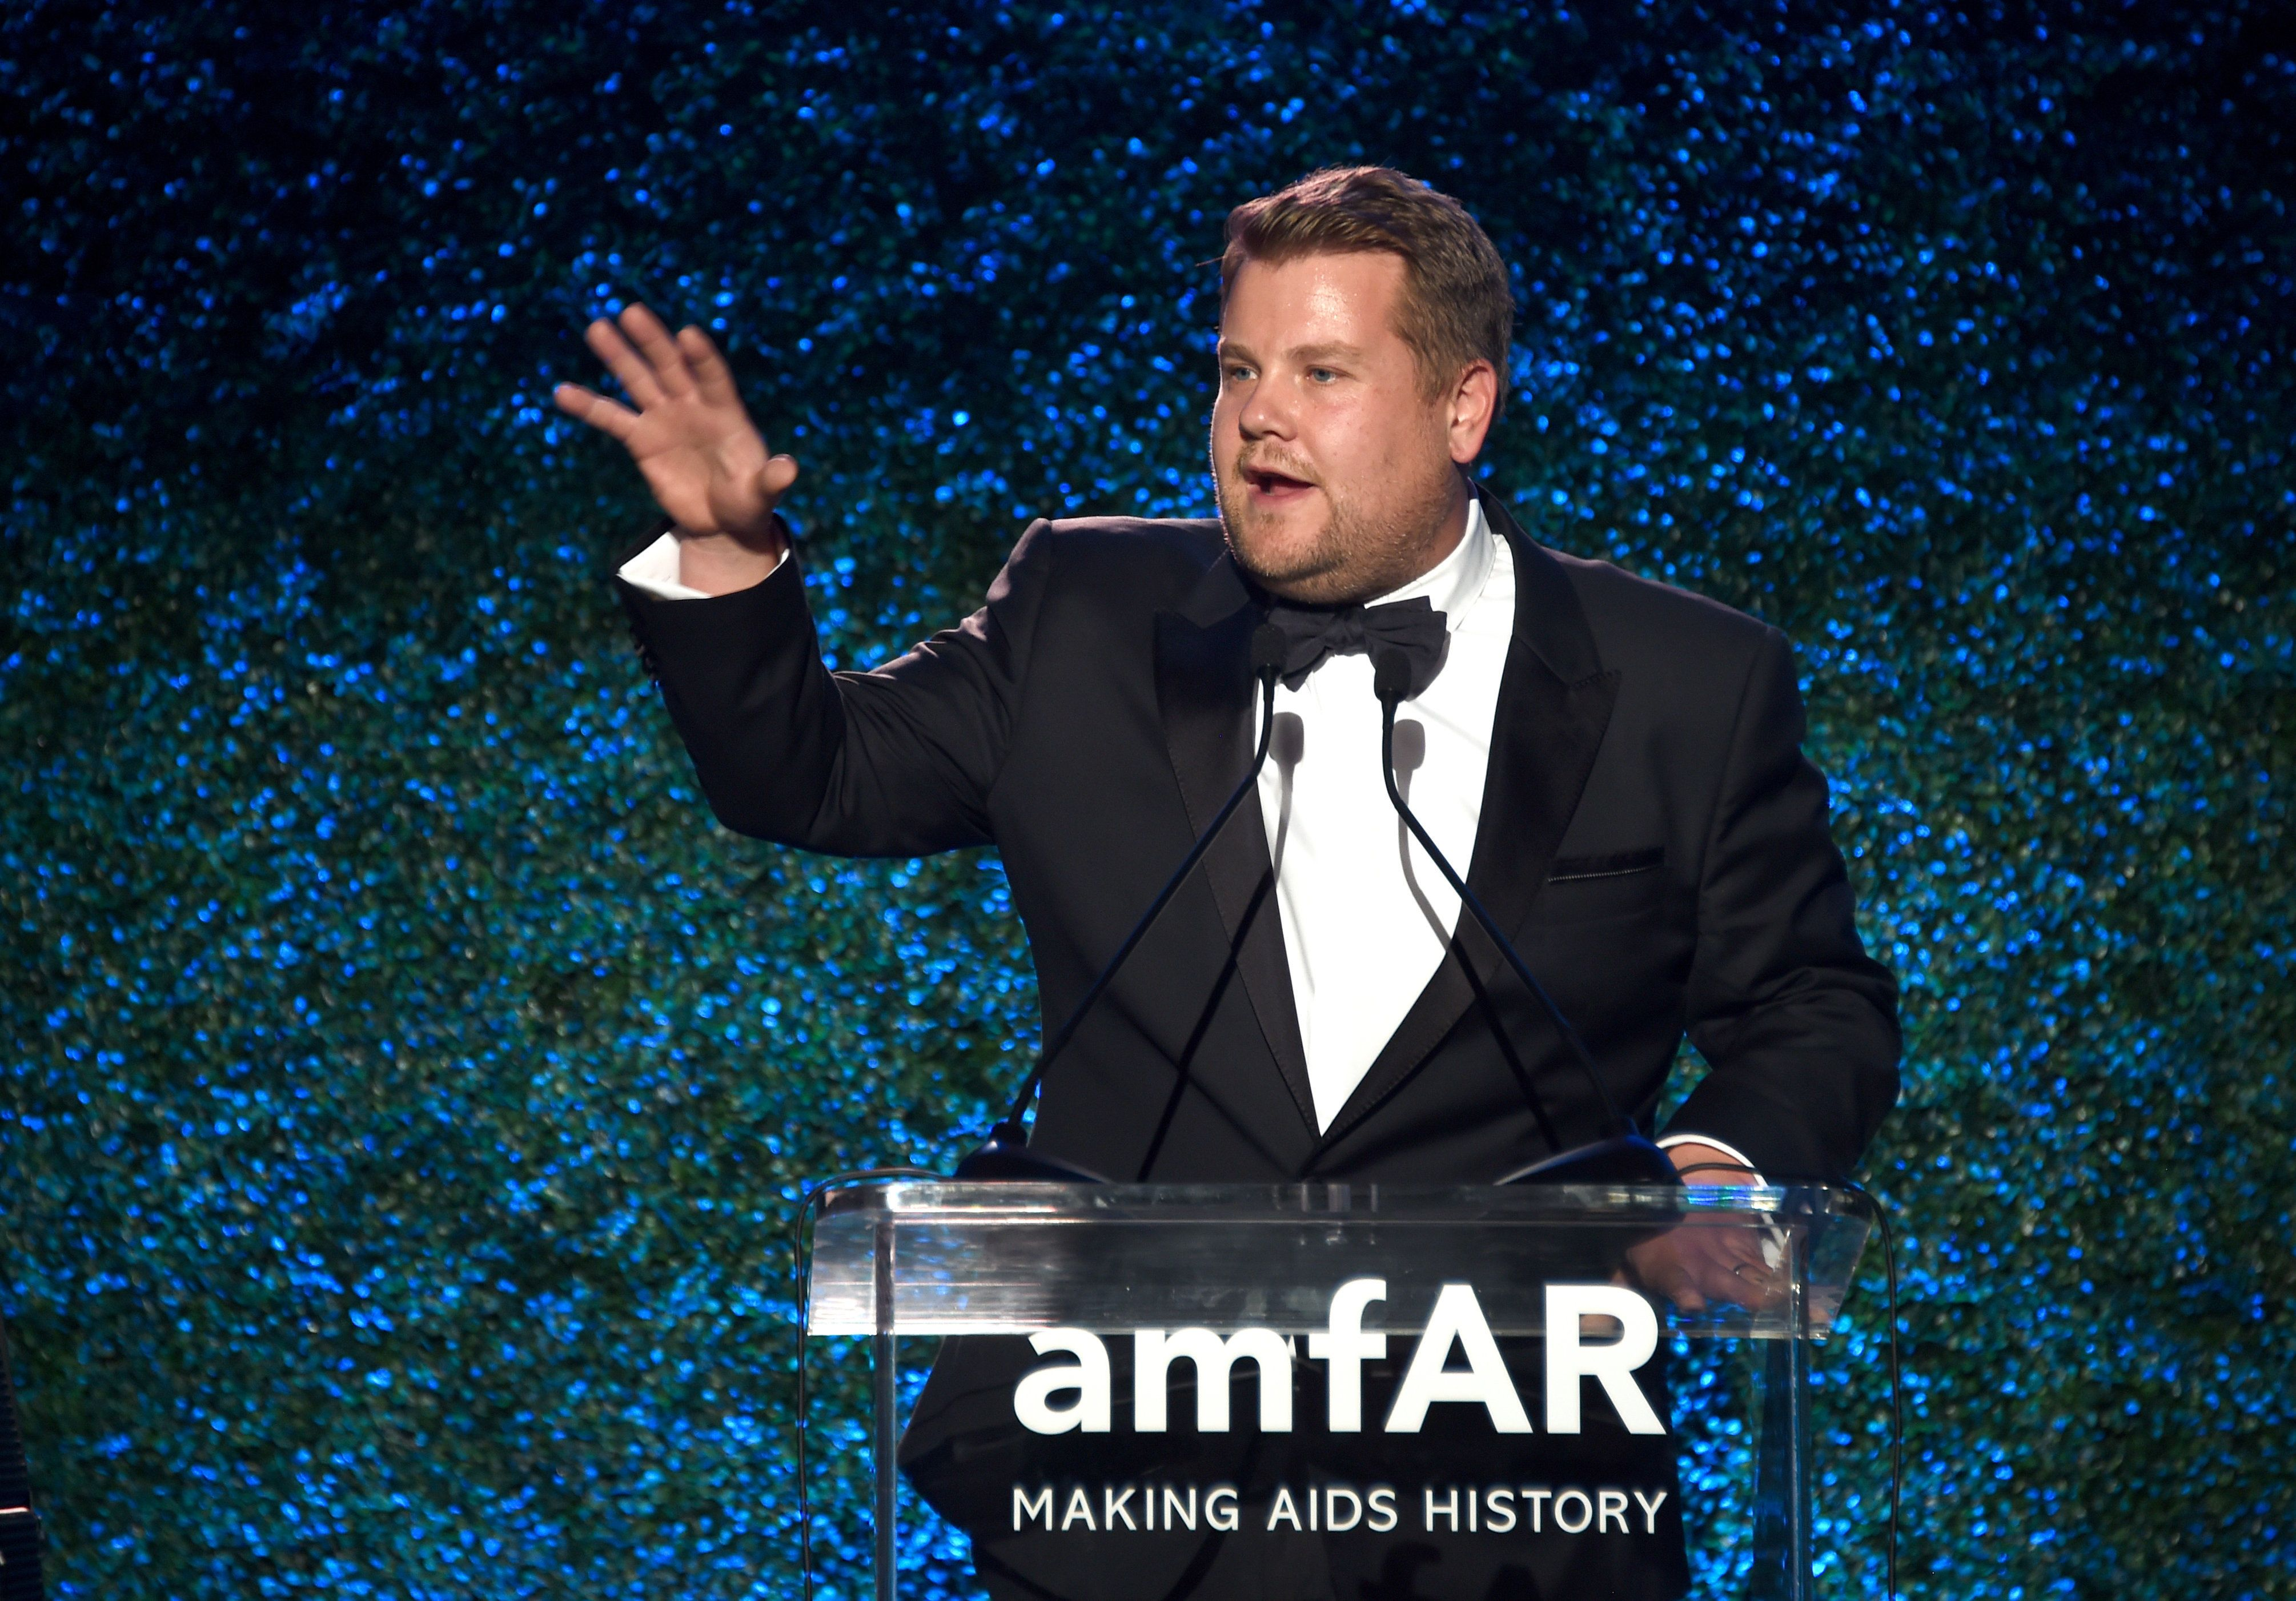 AmfAR Gala Emcee James Corden Scalds Harvey Weinstein With Hot Water Joke